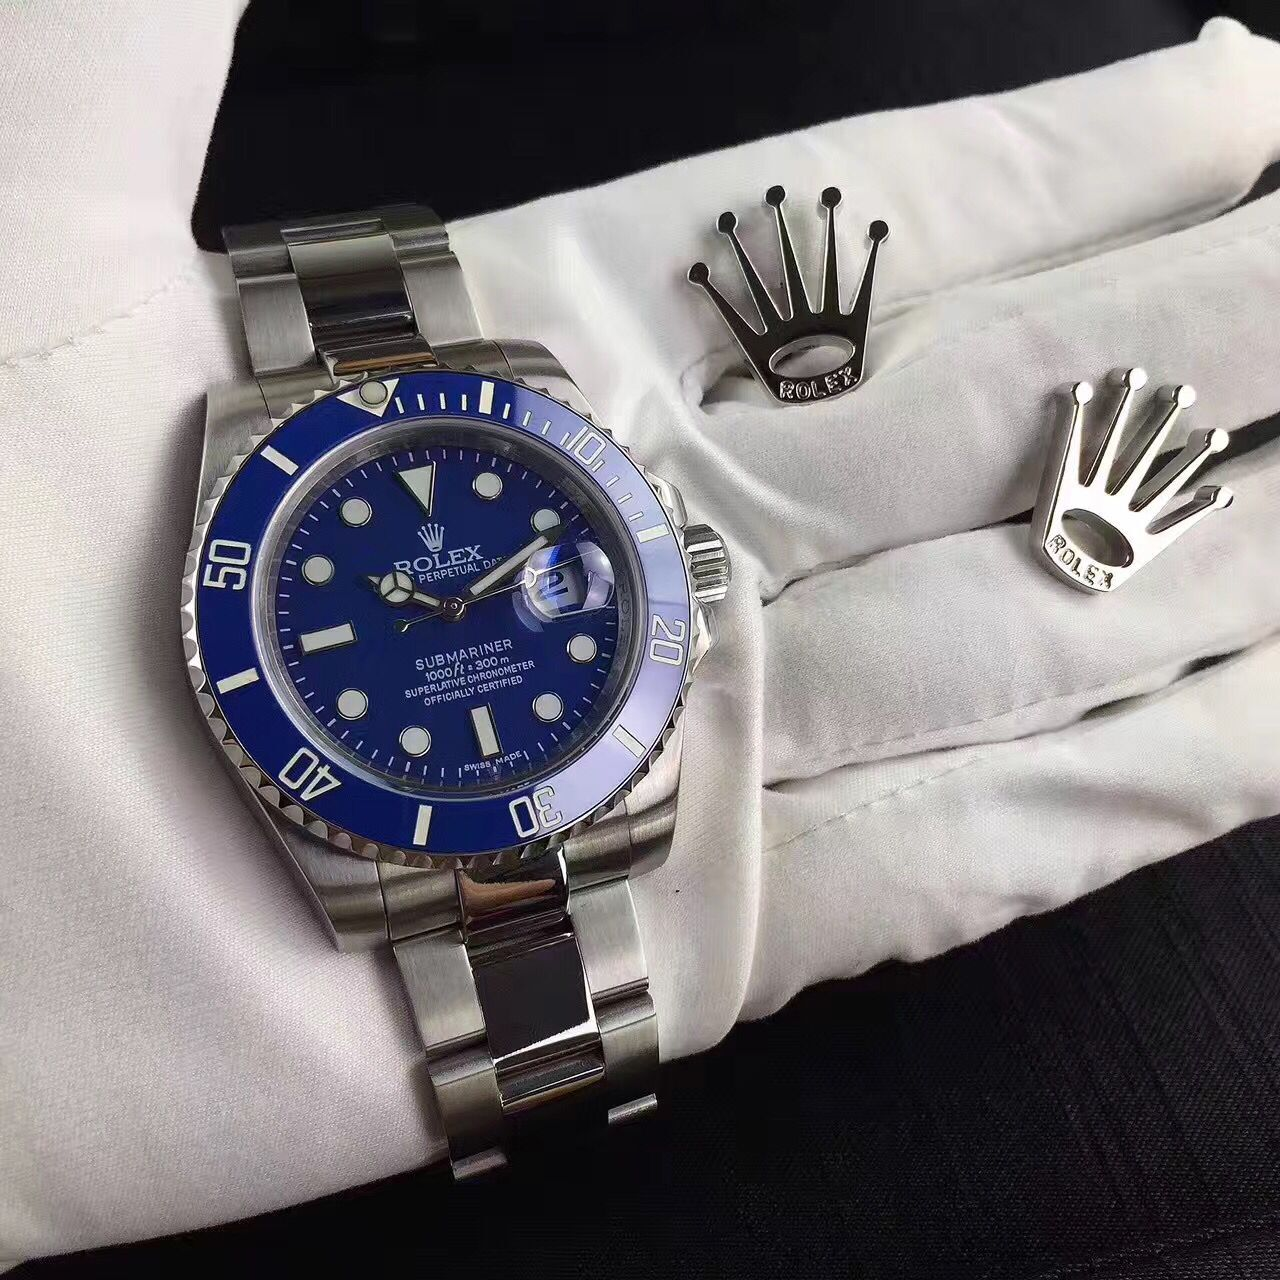 High Quality Oyster Perpetua Blue Dial Watch - FashionBeast